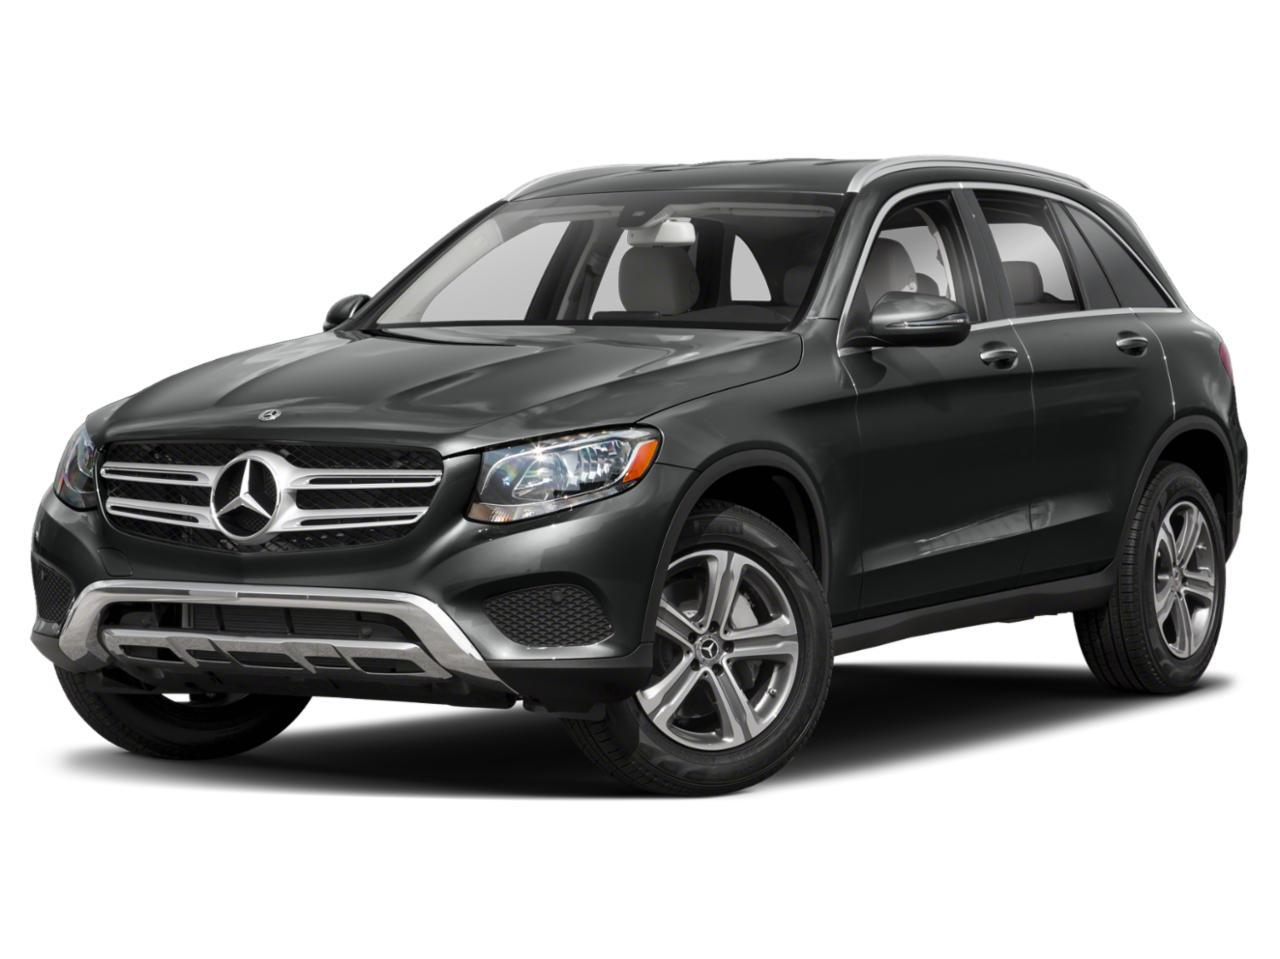 2019 Mercedes-Benz GLC Vehicle Photo in Sheffield, AL 35660